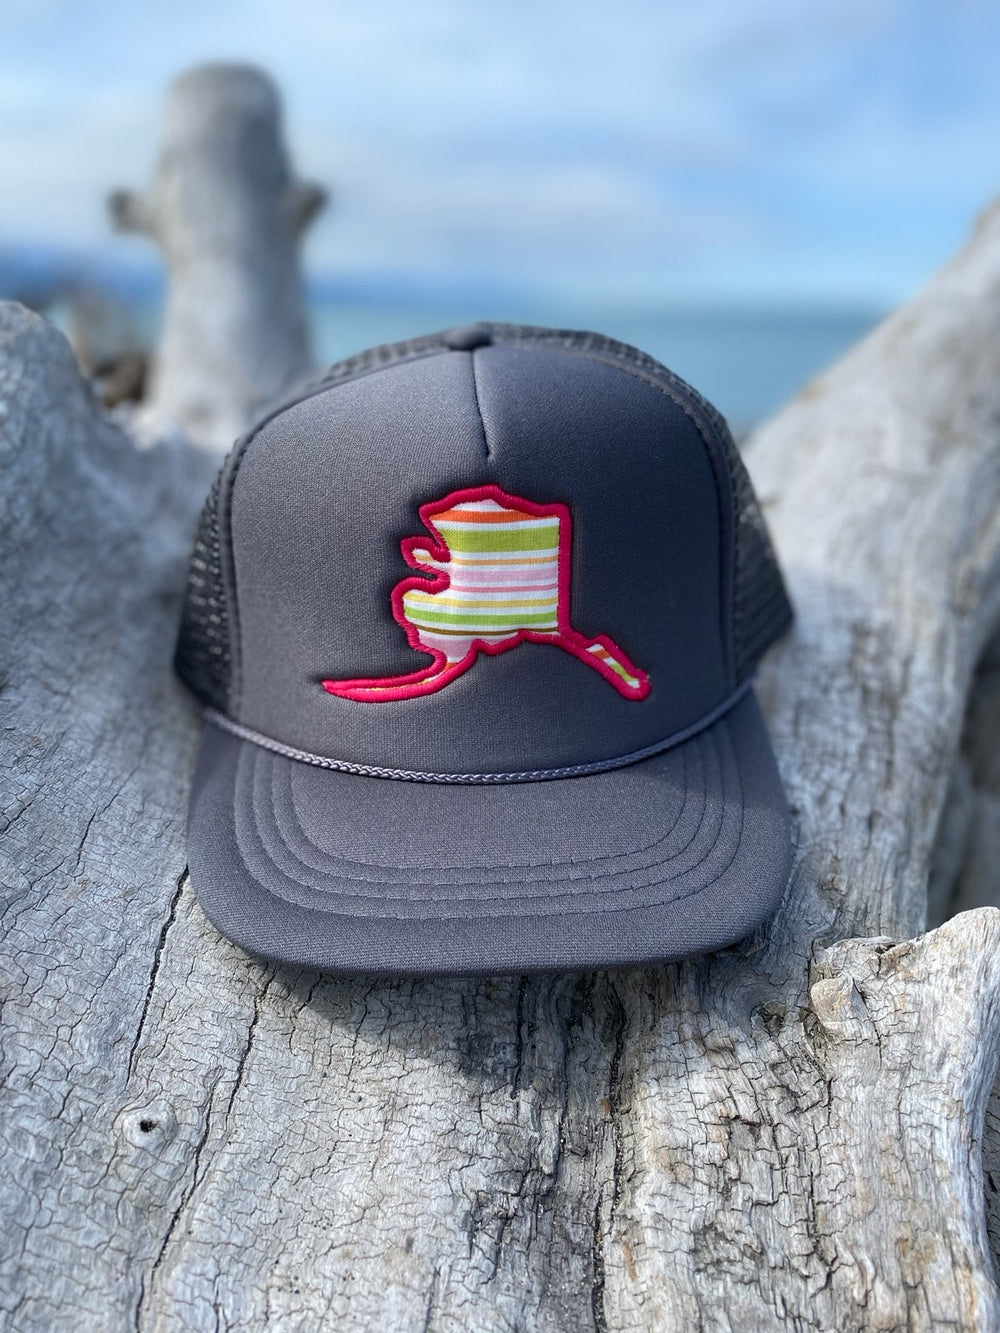 Spring Stripes Alaska Map Trucker Hat